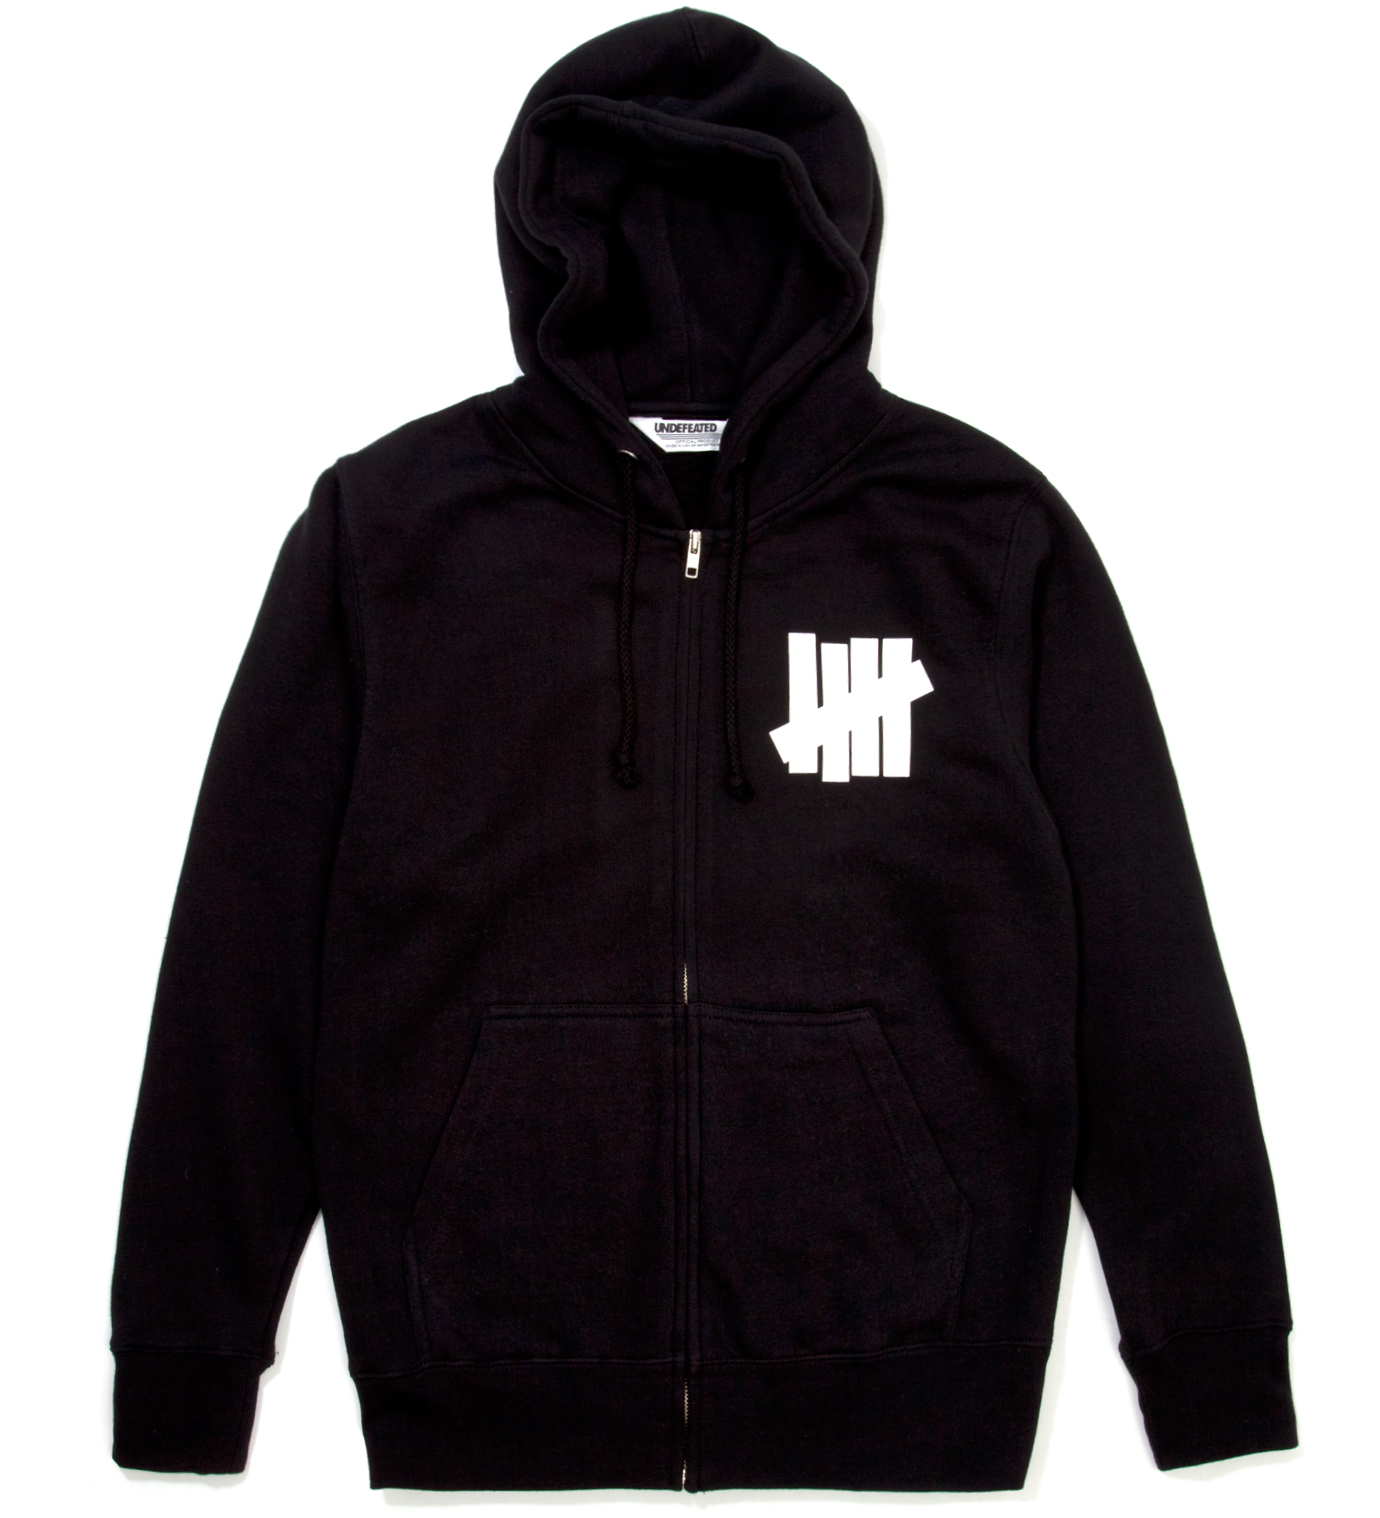 UNDEFEATED Black 5 Strike Zip Hoodie